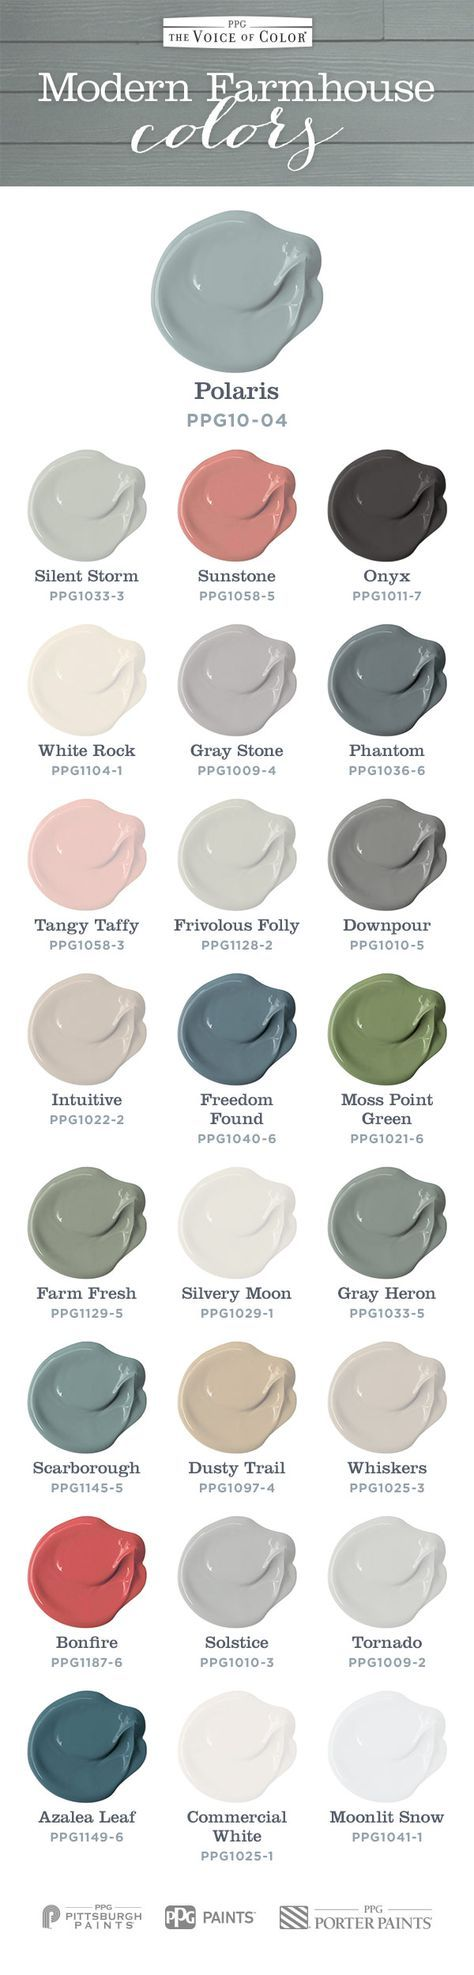 Modern farmhouse inspired styles are extremely trendy, as seen on popular design show Fixer Upper, with designers pulling from French, Industrial and Country styles featuring these paint colors. Achieve the rustic, but soft modern farmhouse look in your own home with these paint colors! More